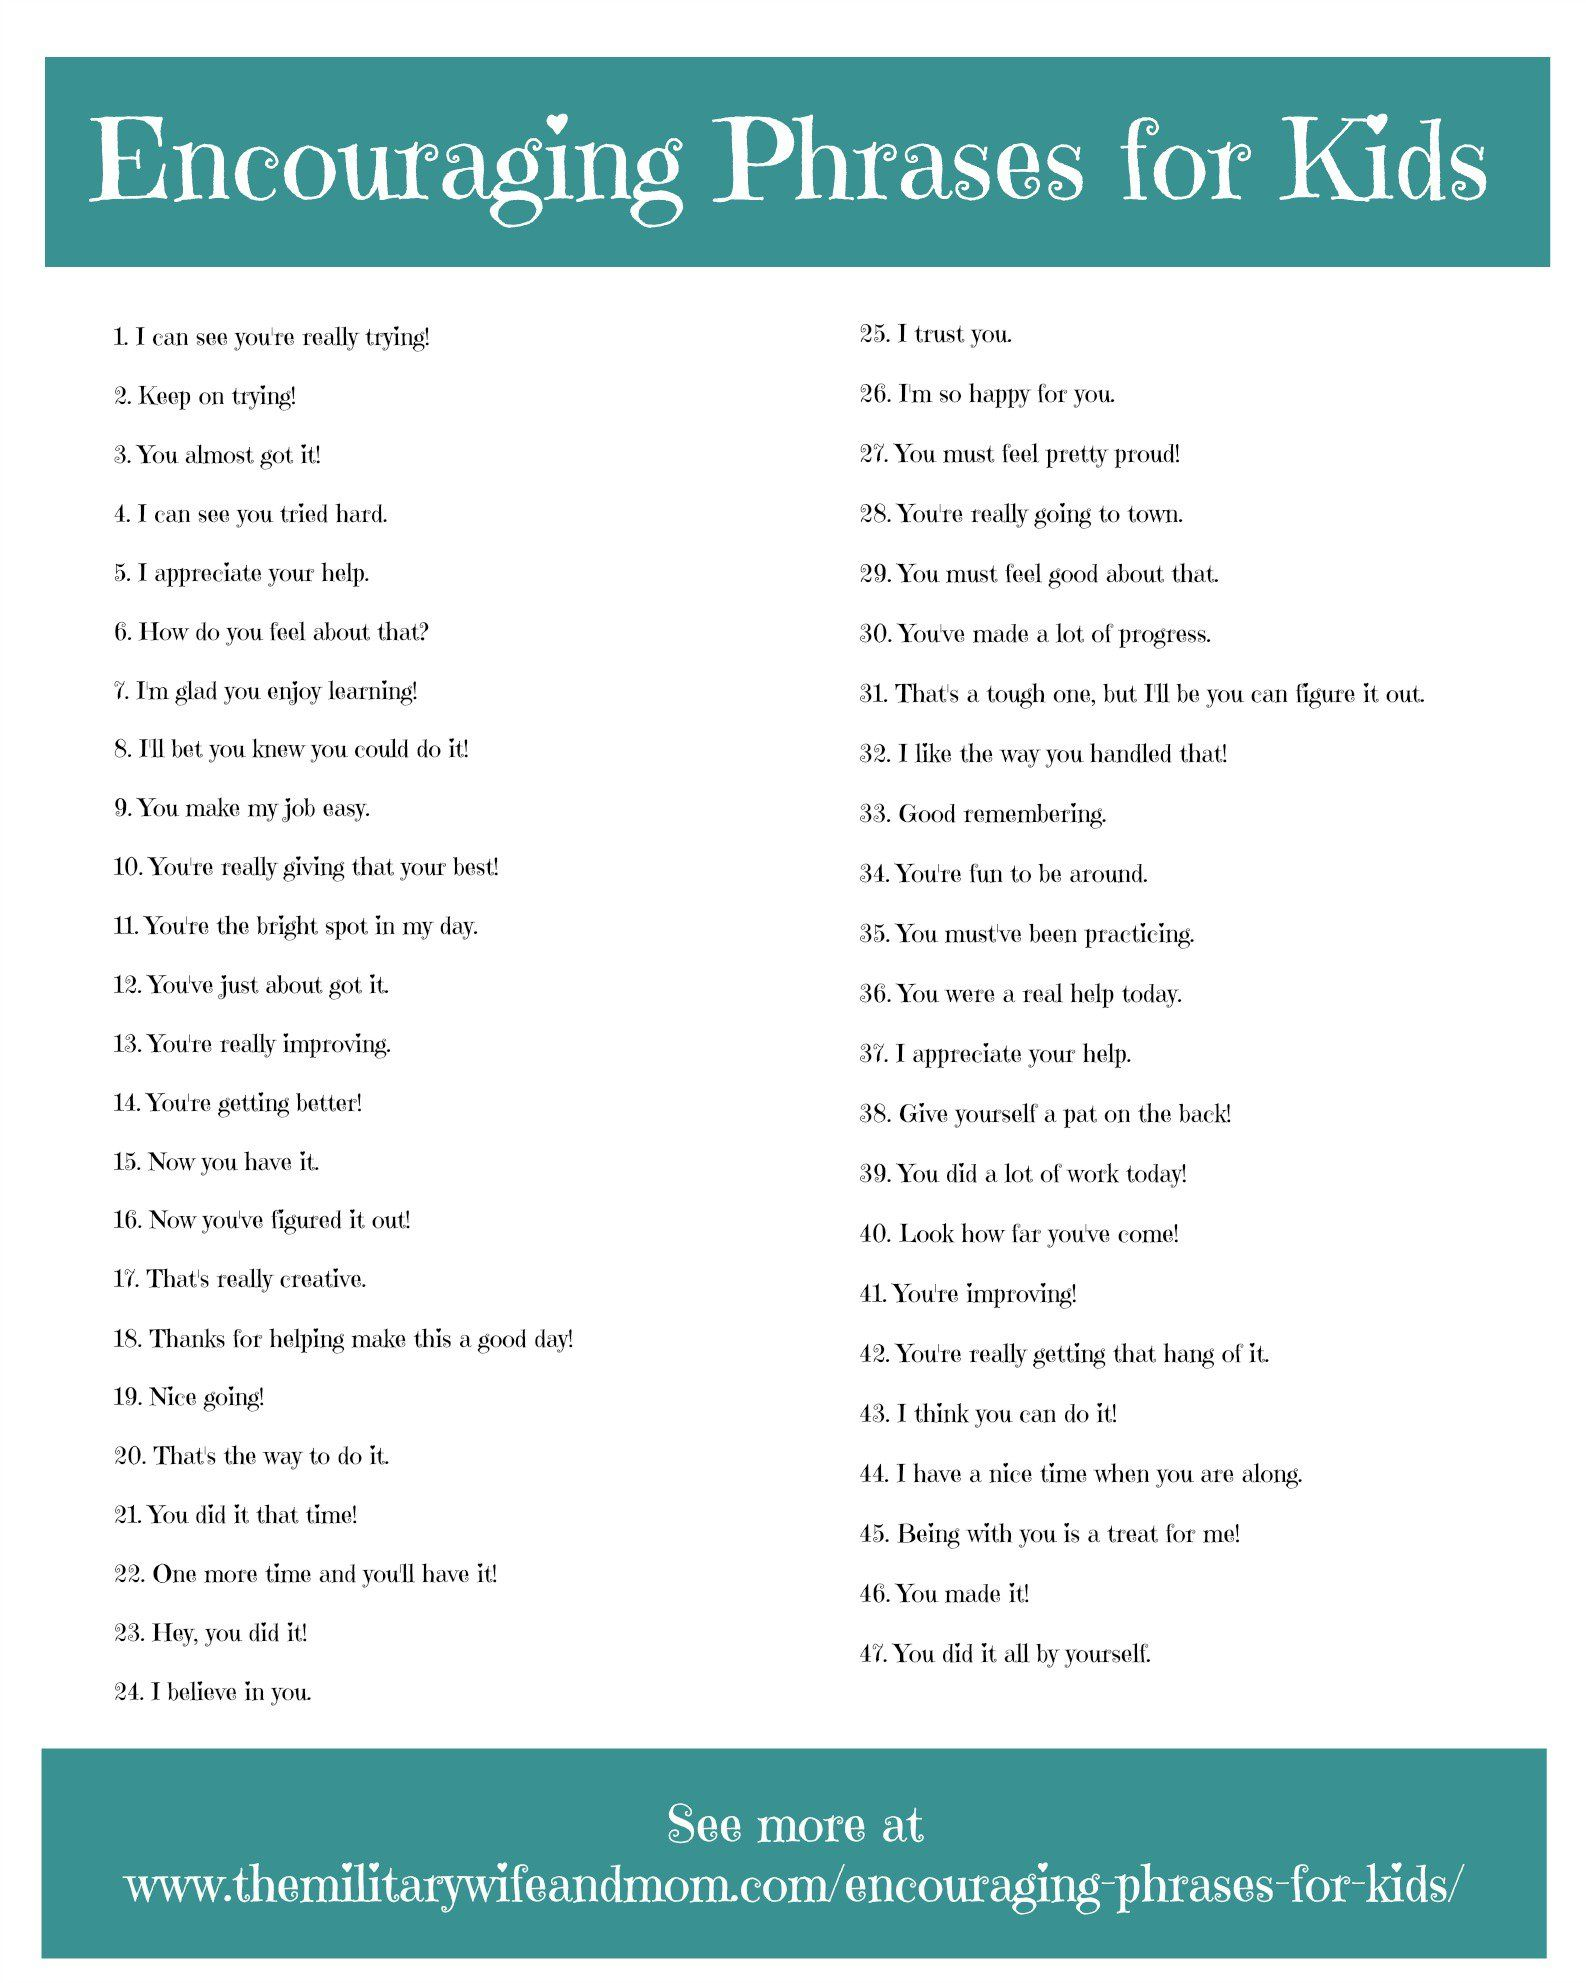 47 Encouraging Phrases For Kids That